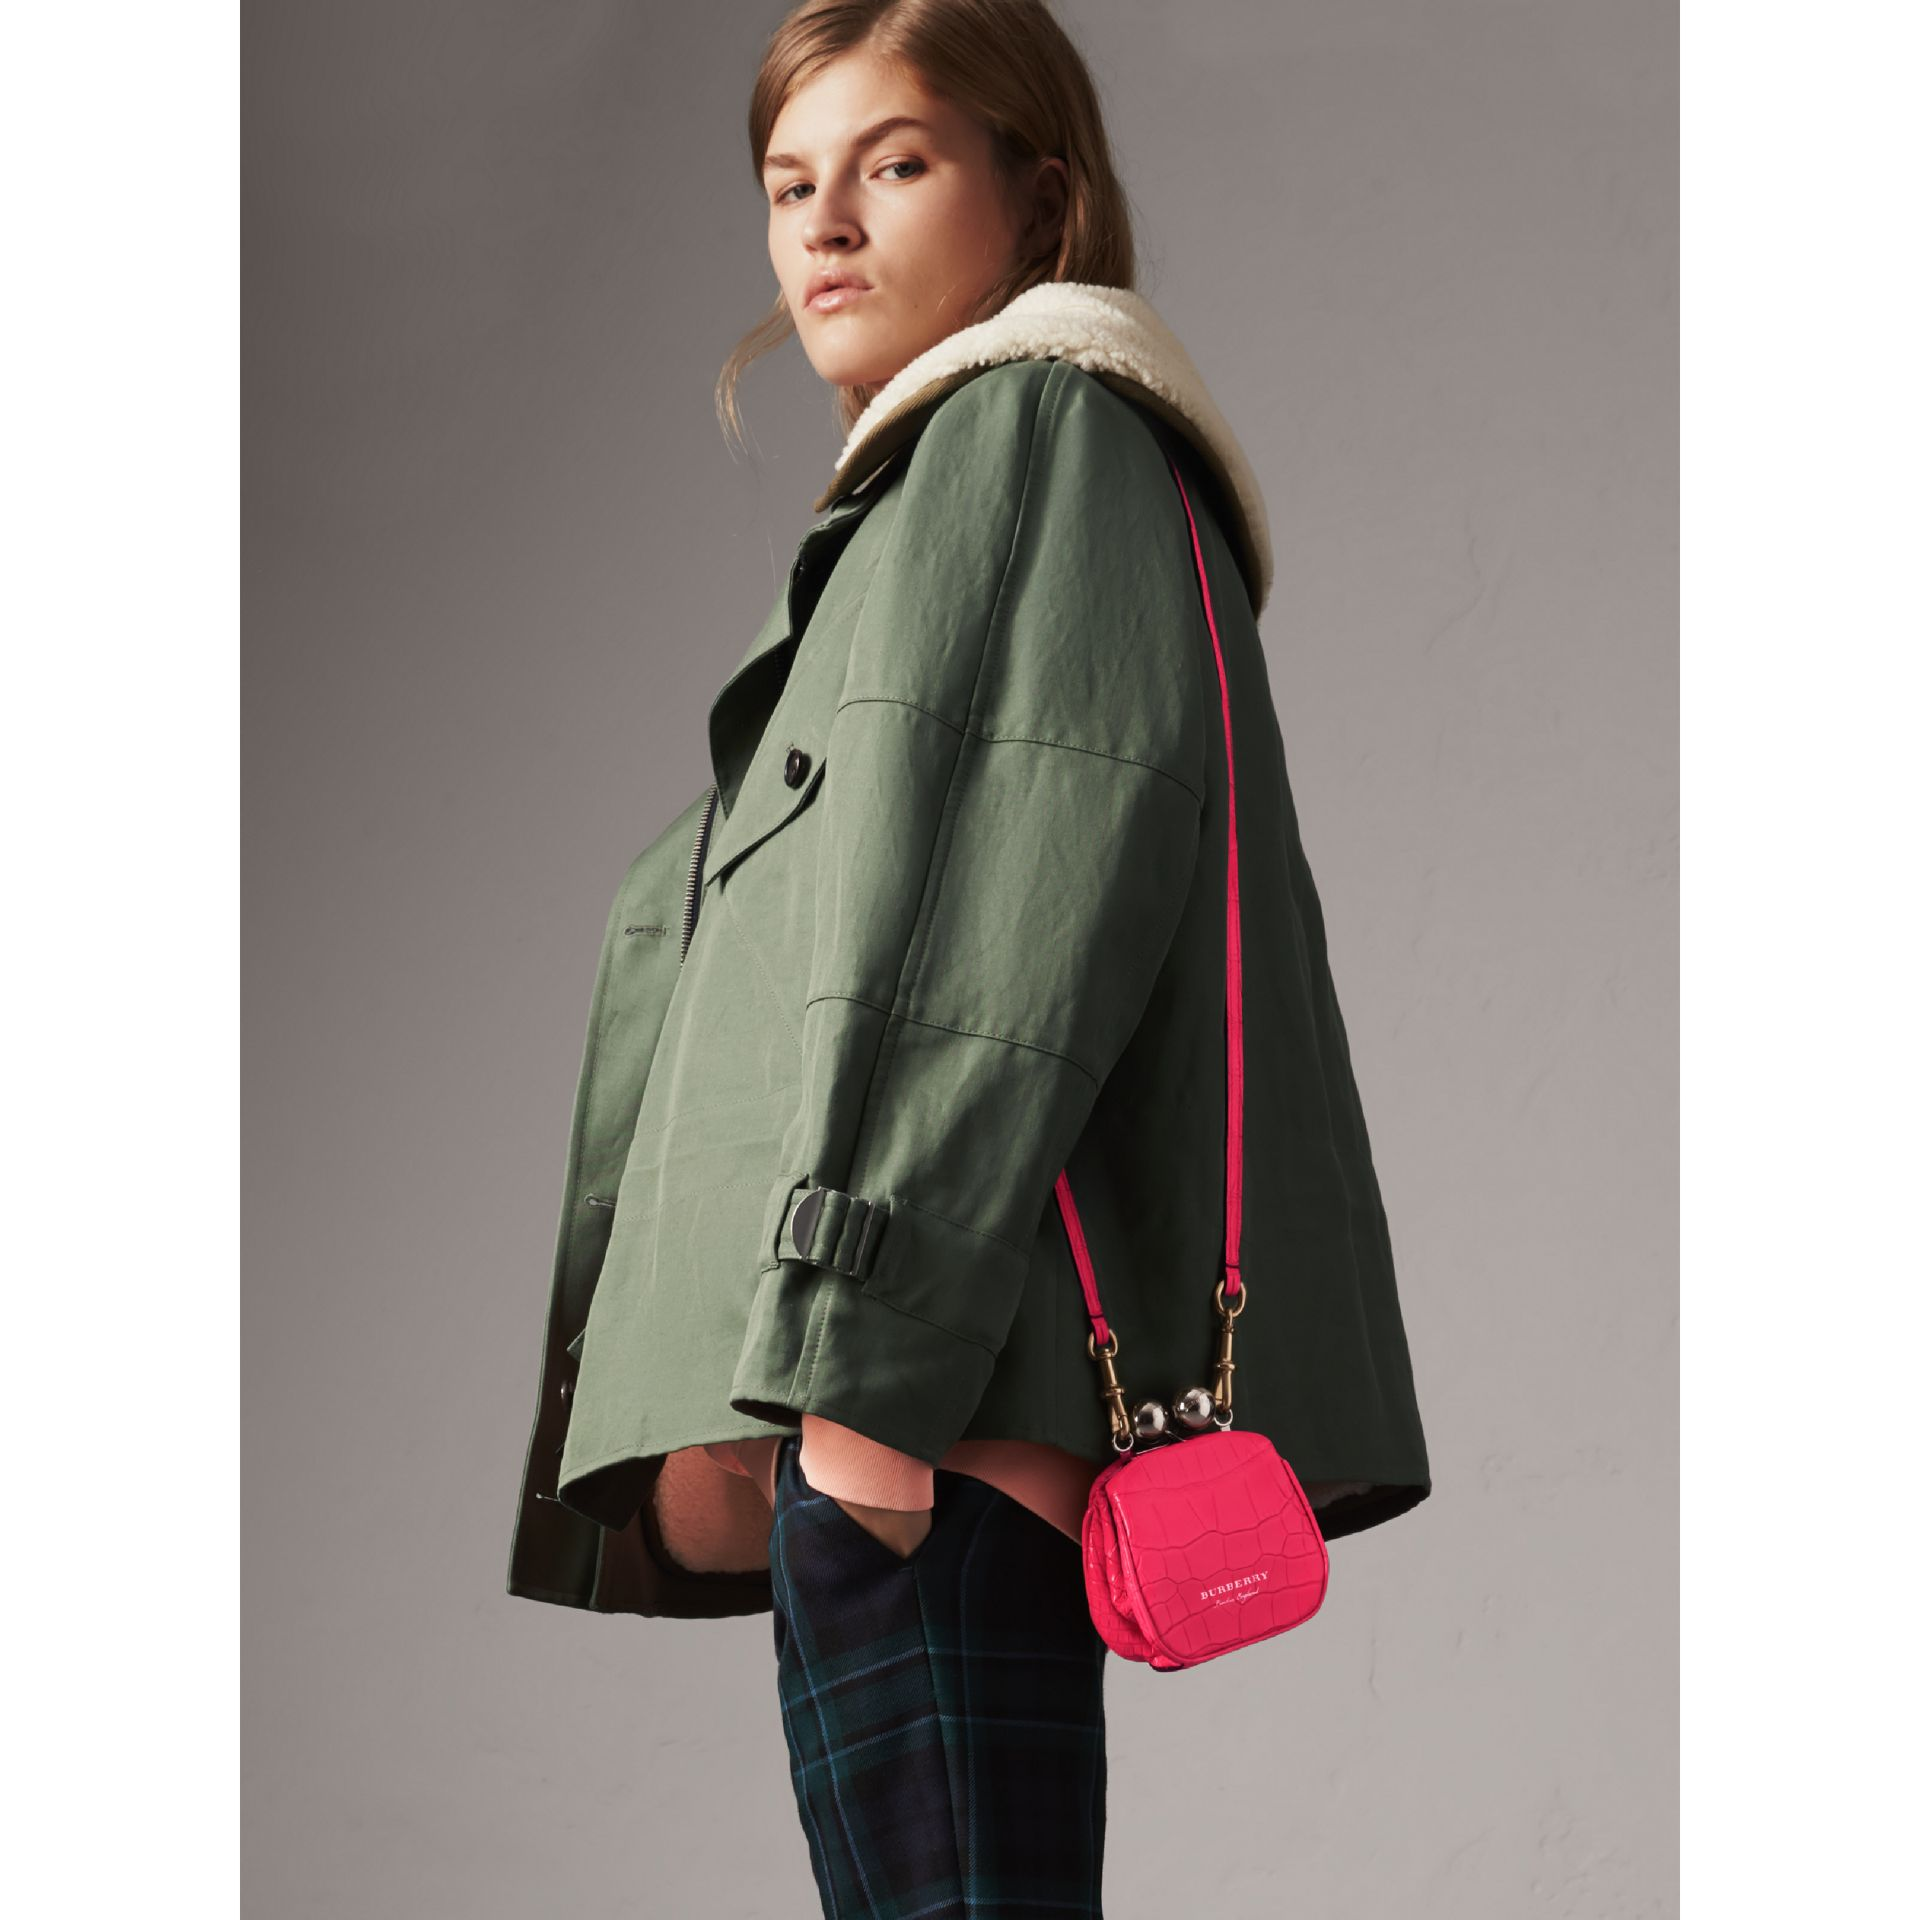 Mini sac porte-monnaie en alligator (Rose Néon) - Femme | Burberry Canada - photo de la galerie 2